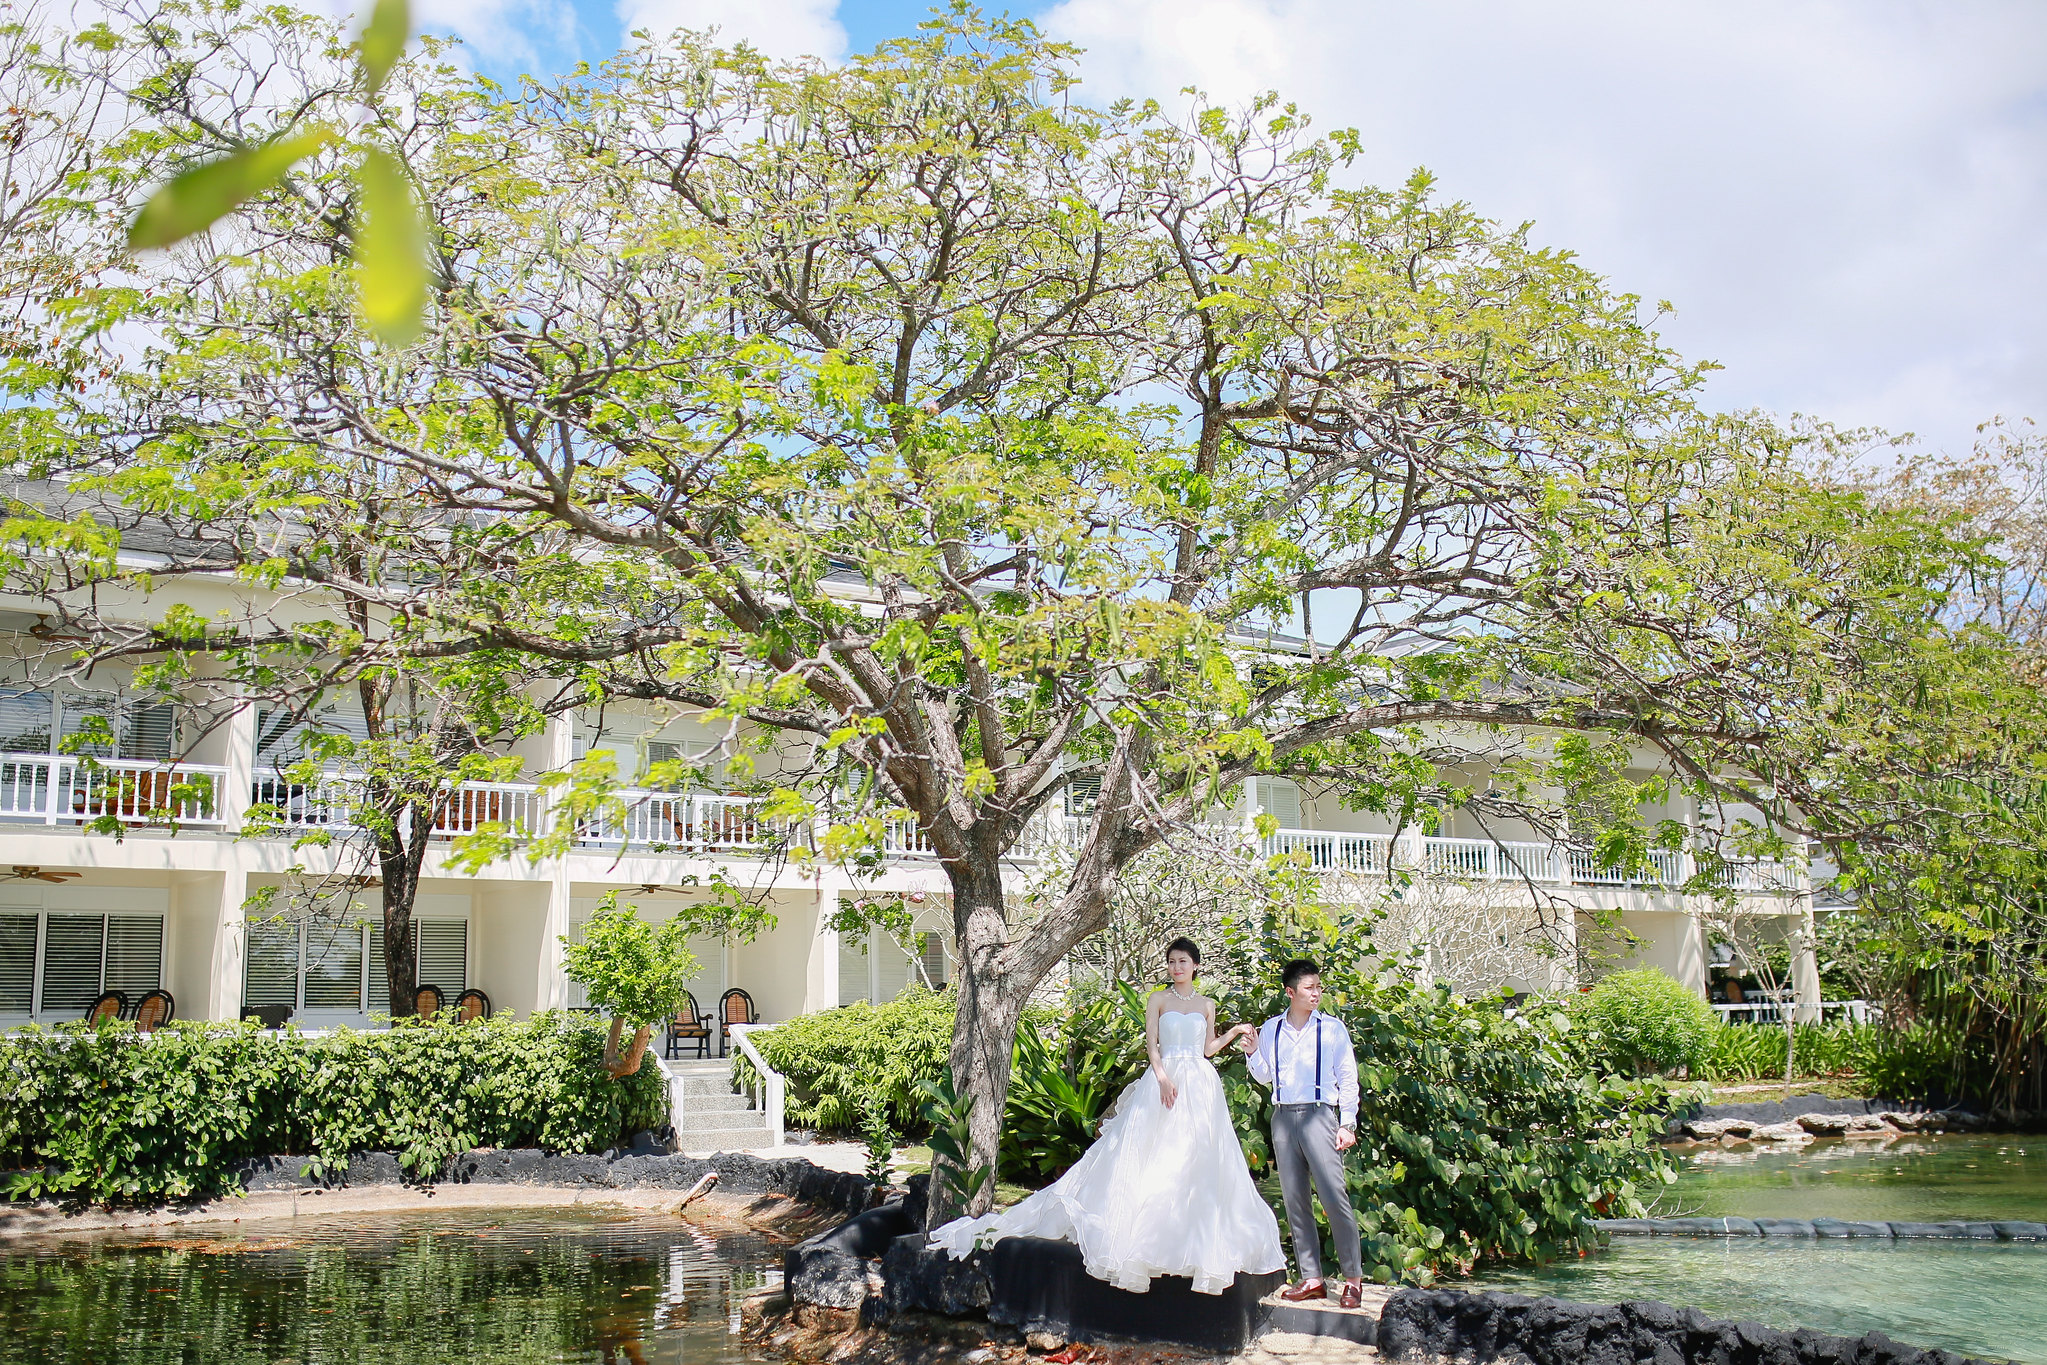 Plantation Bay Wedding Photographer, Cebu Philippines Wedding Photographer